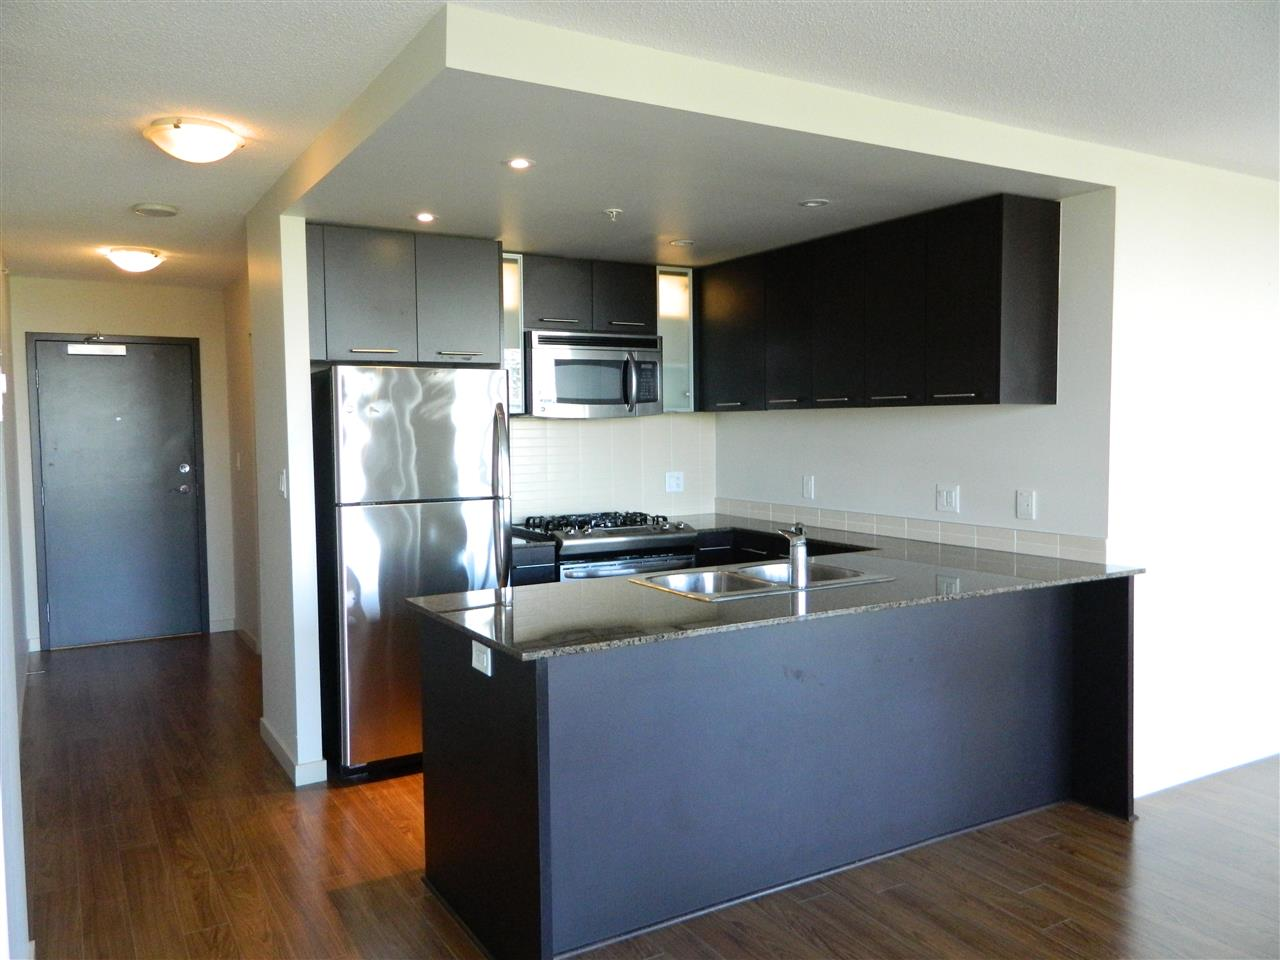 Main Photo: 704 3111 CORVETTE Way in Richmond: West Cambie Condo for sale : MLS(r) # R2131378